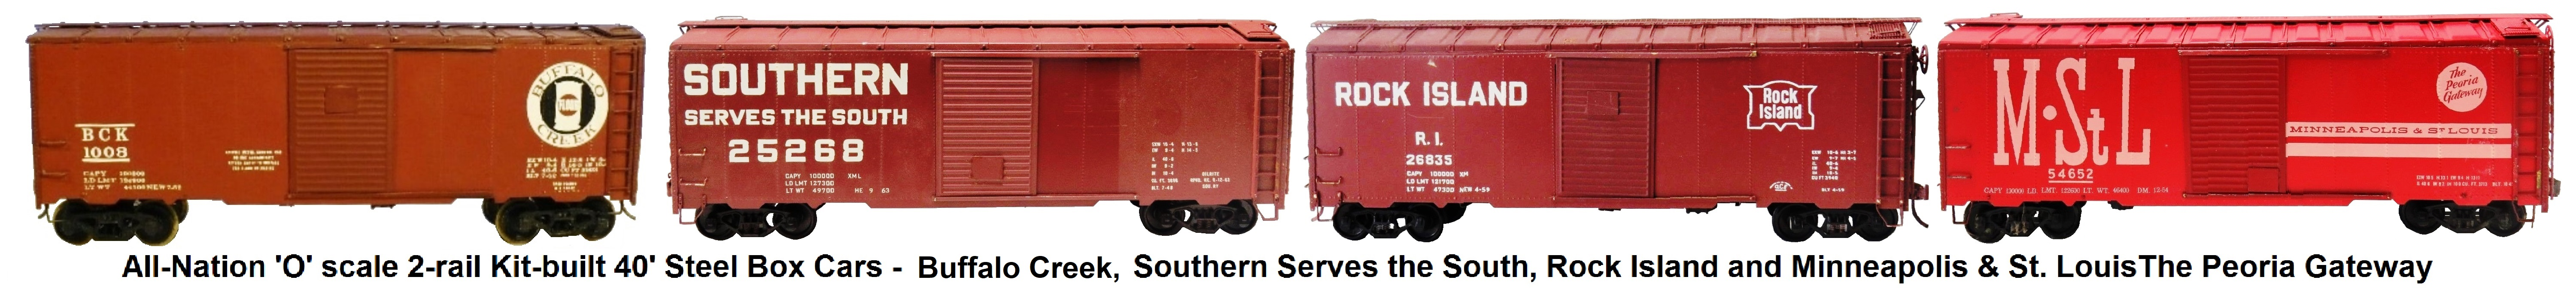 All-Nation 'O' scale 40' Steel Box Cars Kit-built into Pennsylvania RR, Southern Serves The South, Rock Island, Minneapolis & St. Louis The Peoria Gateway Liveries